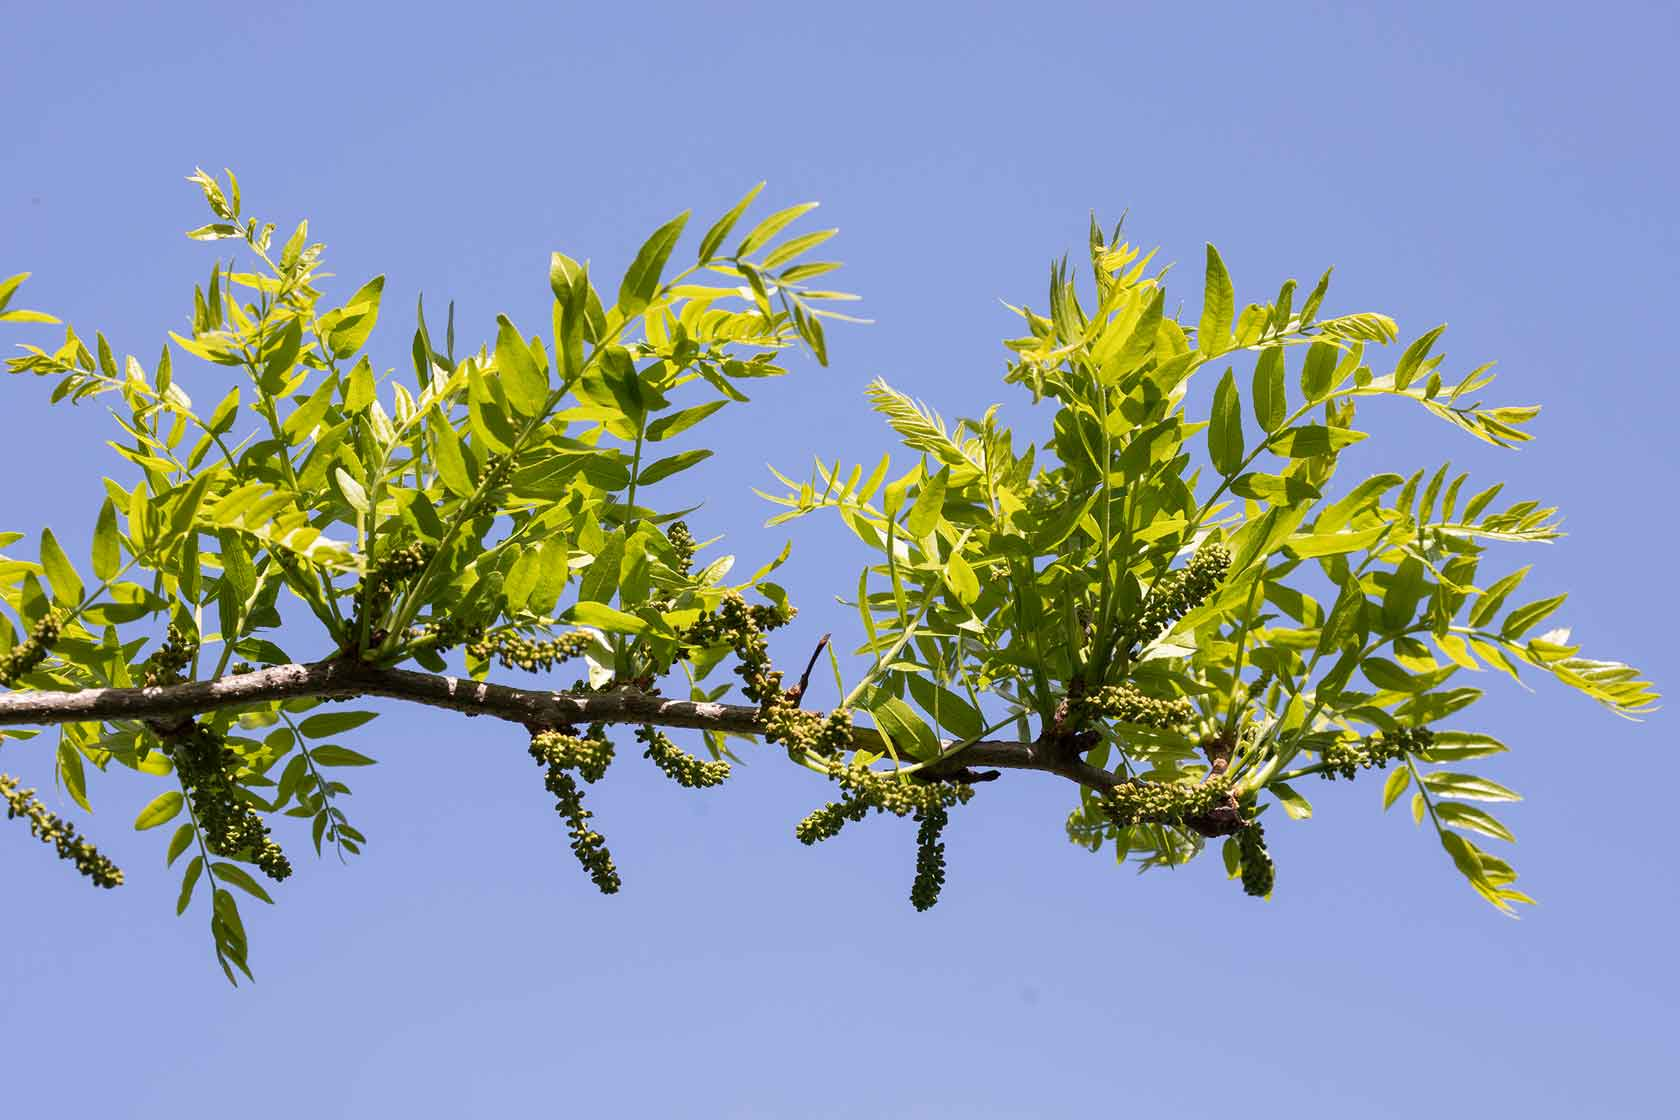 A branch of leaves on the honey locust trees